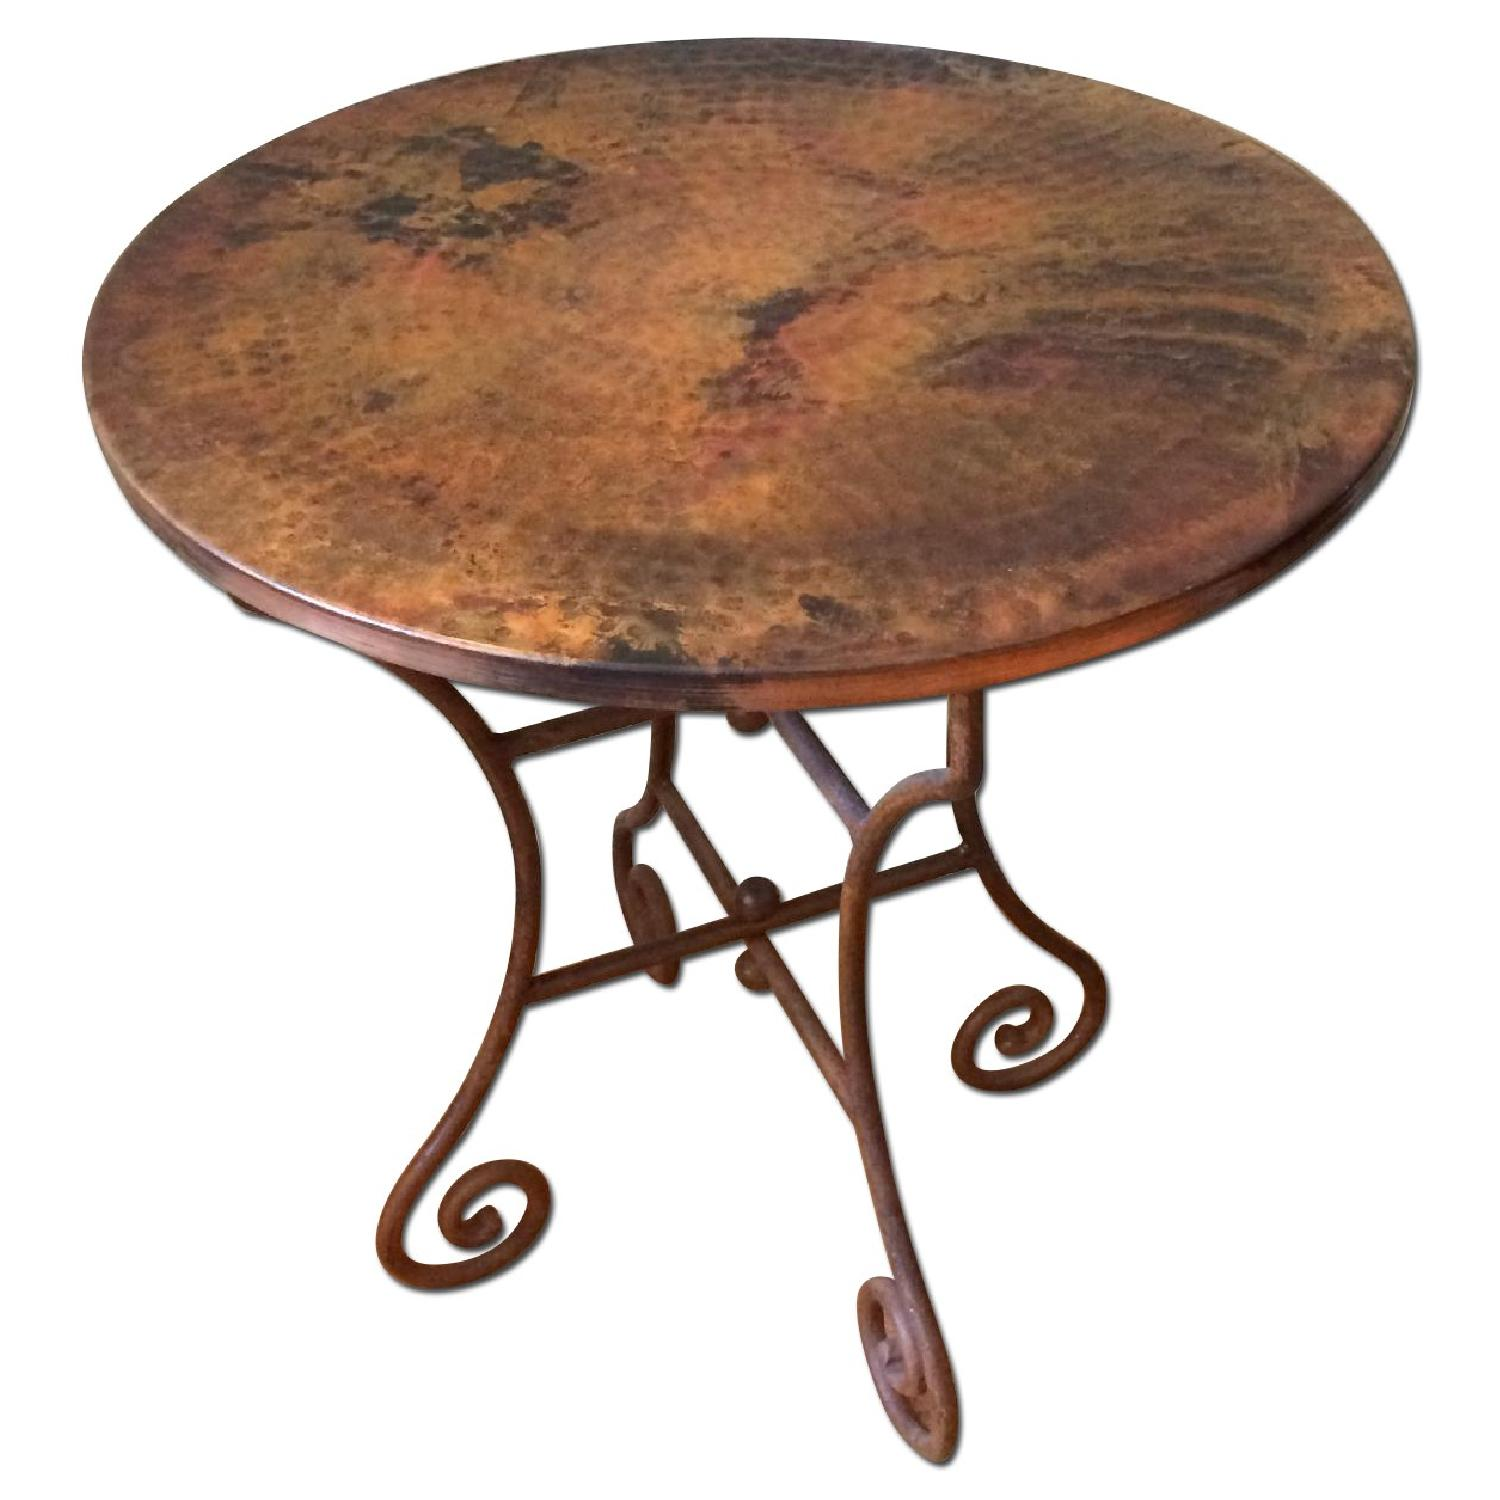 Hammered Copper Top End Tables - image-0